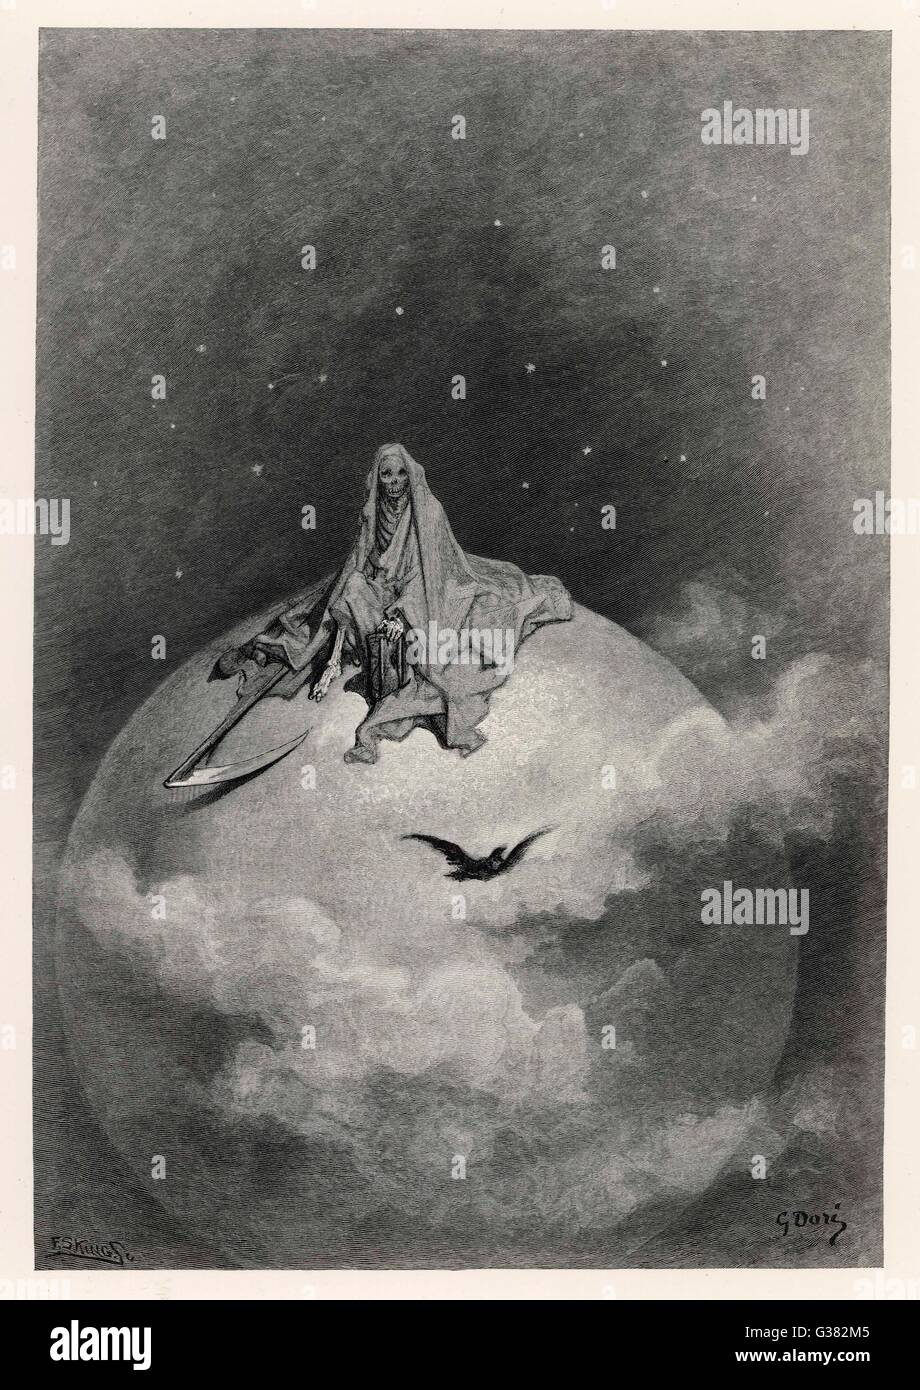 Death depicted as The Grim  Reaper, on top of the world         Date: 1883 - Stock Image